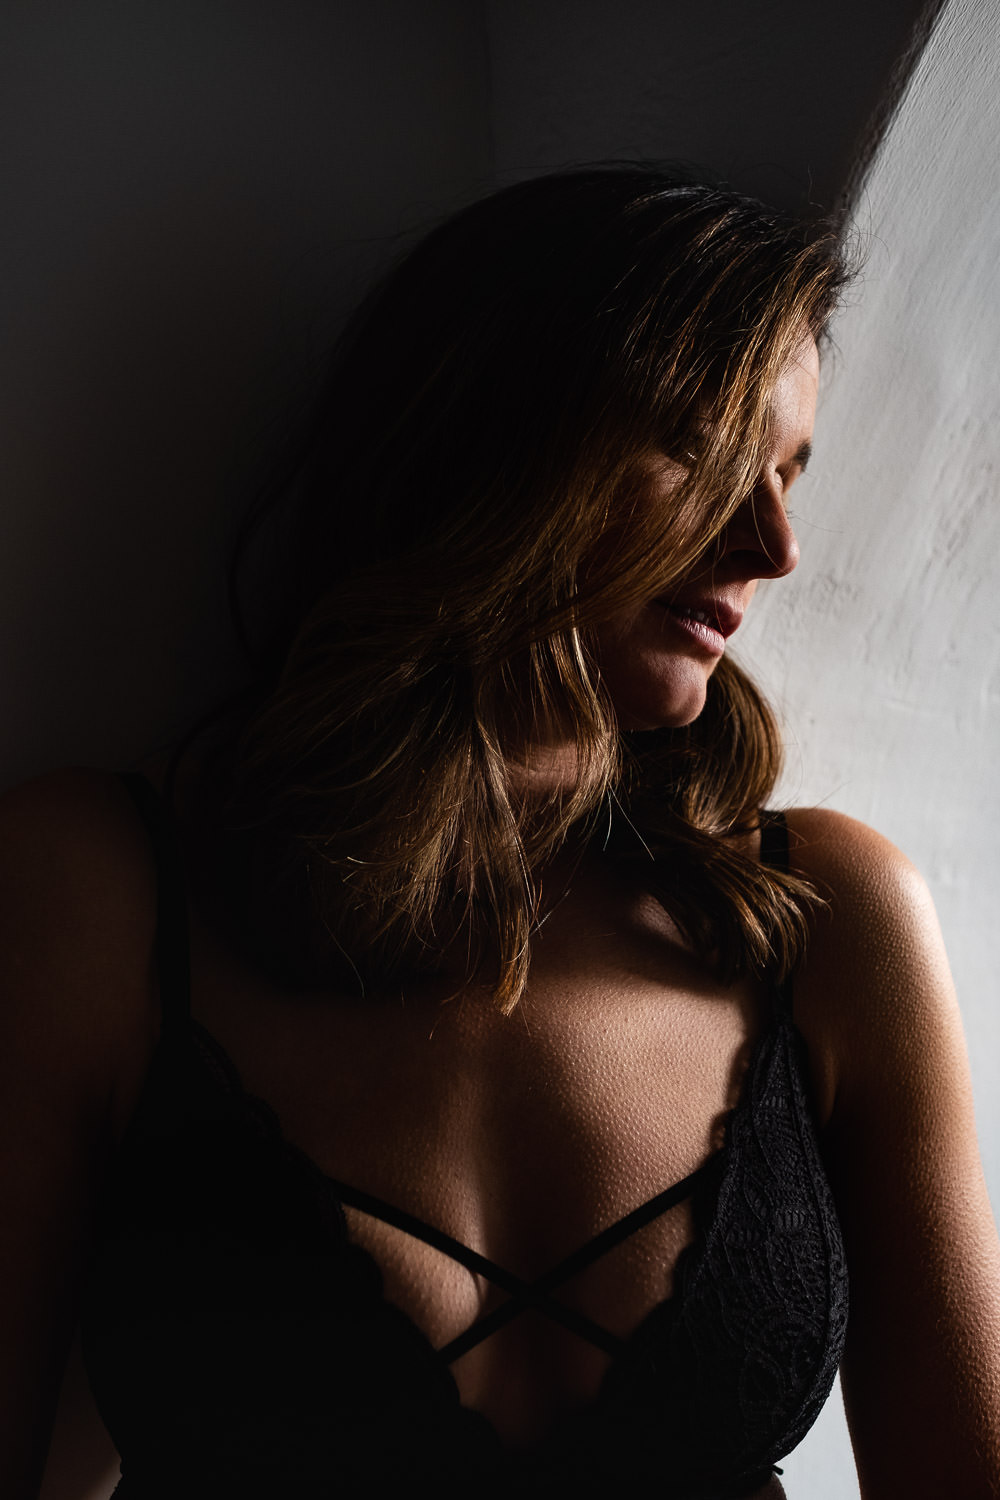 Woman leaning against the wall in a black bra as the light falls across one side of her, with the other half in shadows.